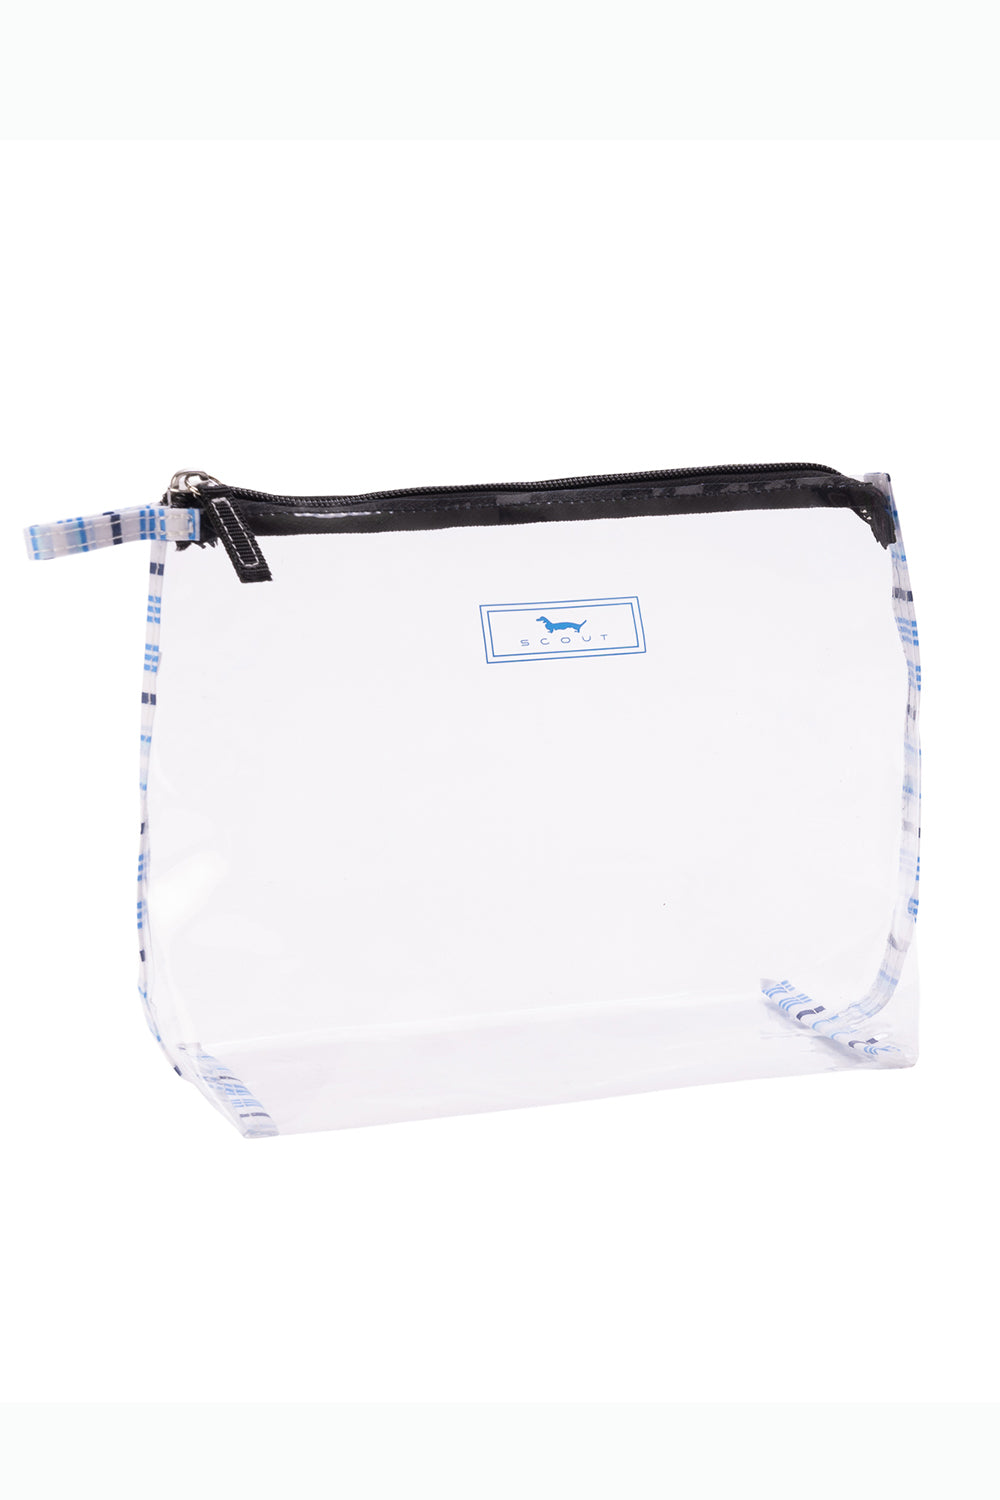 "In The Clear Cosmetic Bag - ""Out of the Blue"" SS20"